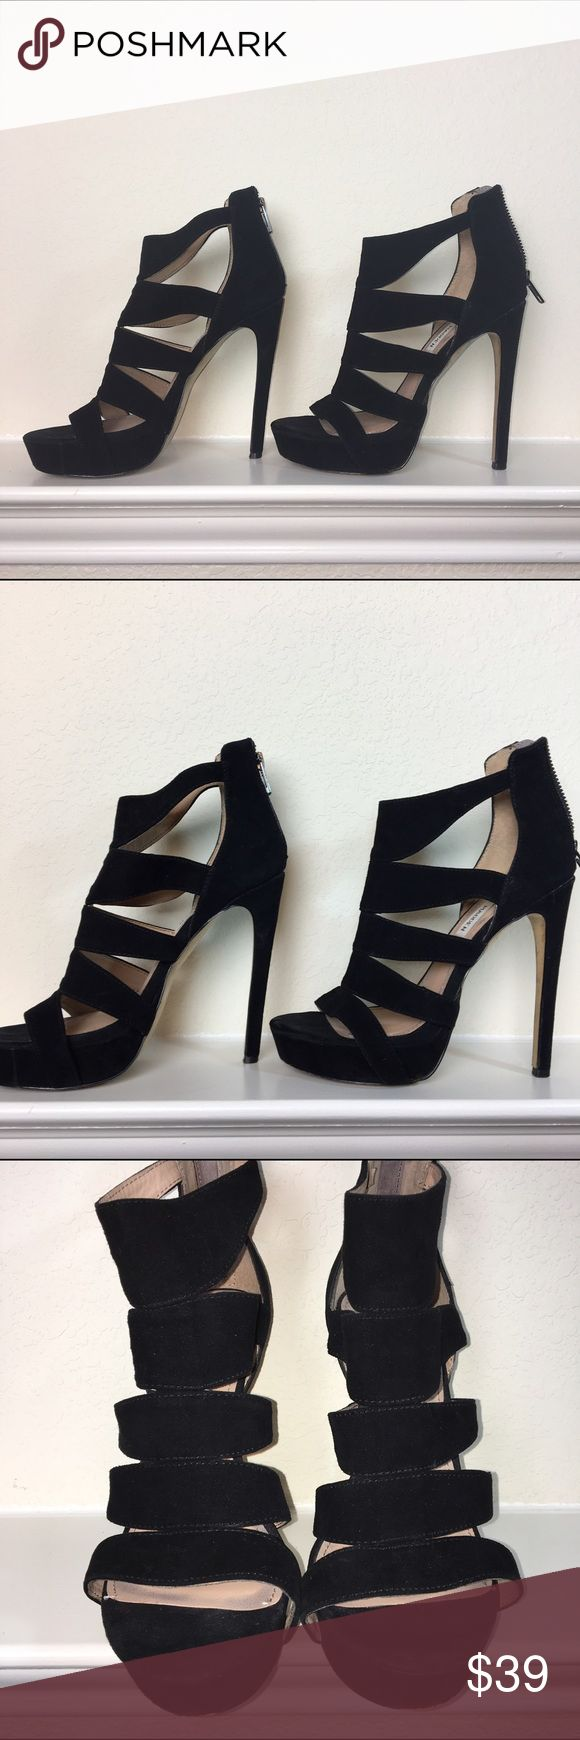 """💋 Steve Madden Black Suede High Heels💋 Beautiful Suede heels! A little over 5"""" heel height with a platform Some small signs of wear but in great condition. ~See last Photos~ Steve Madden Shoes Heels"""